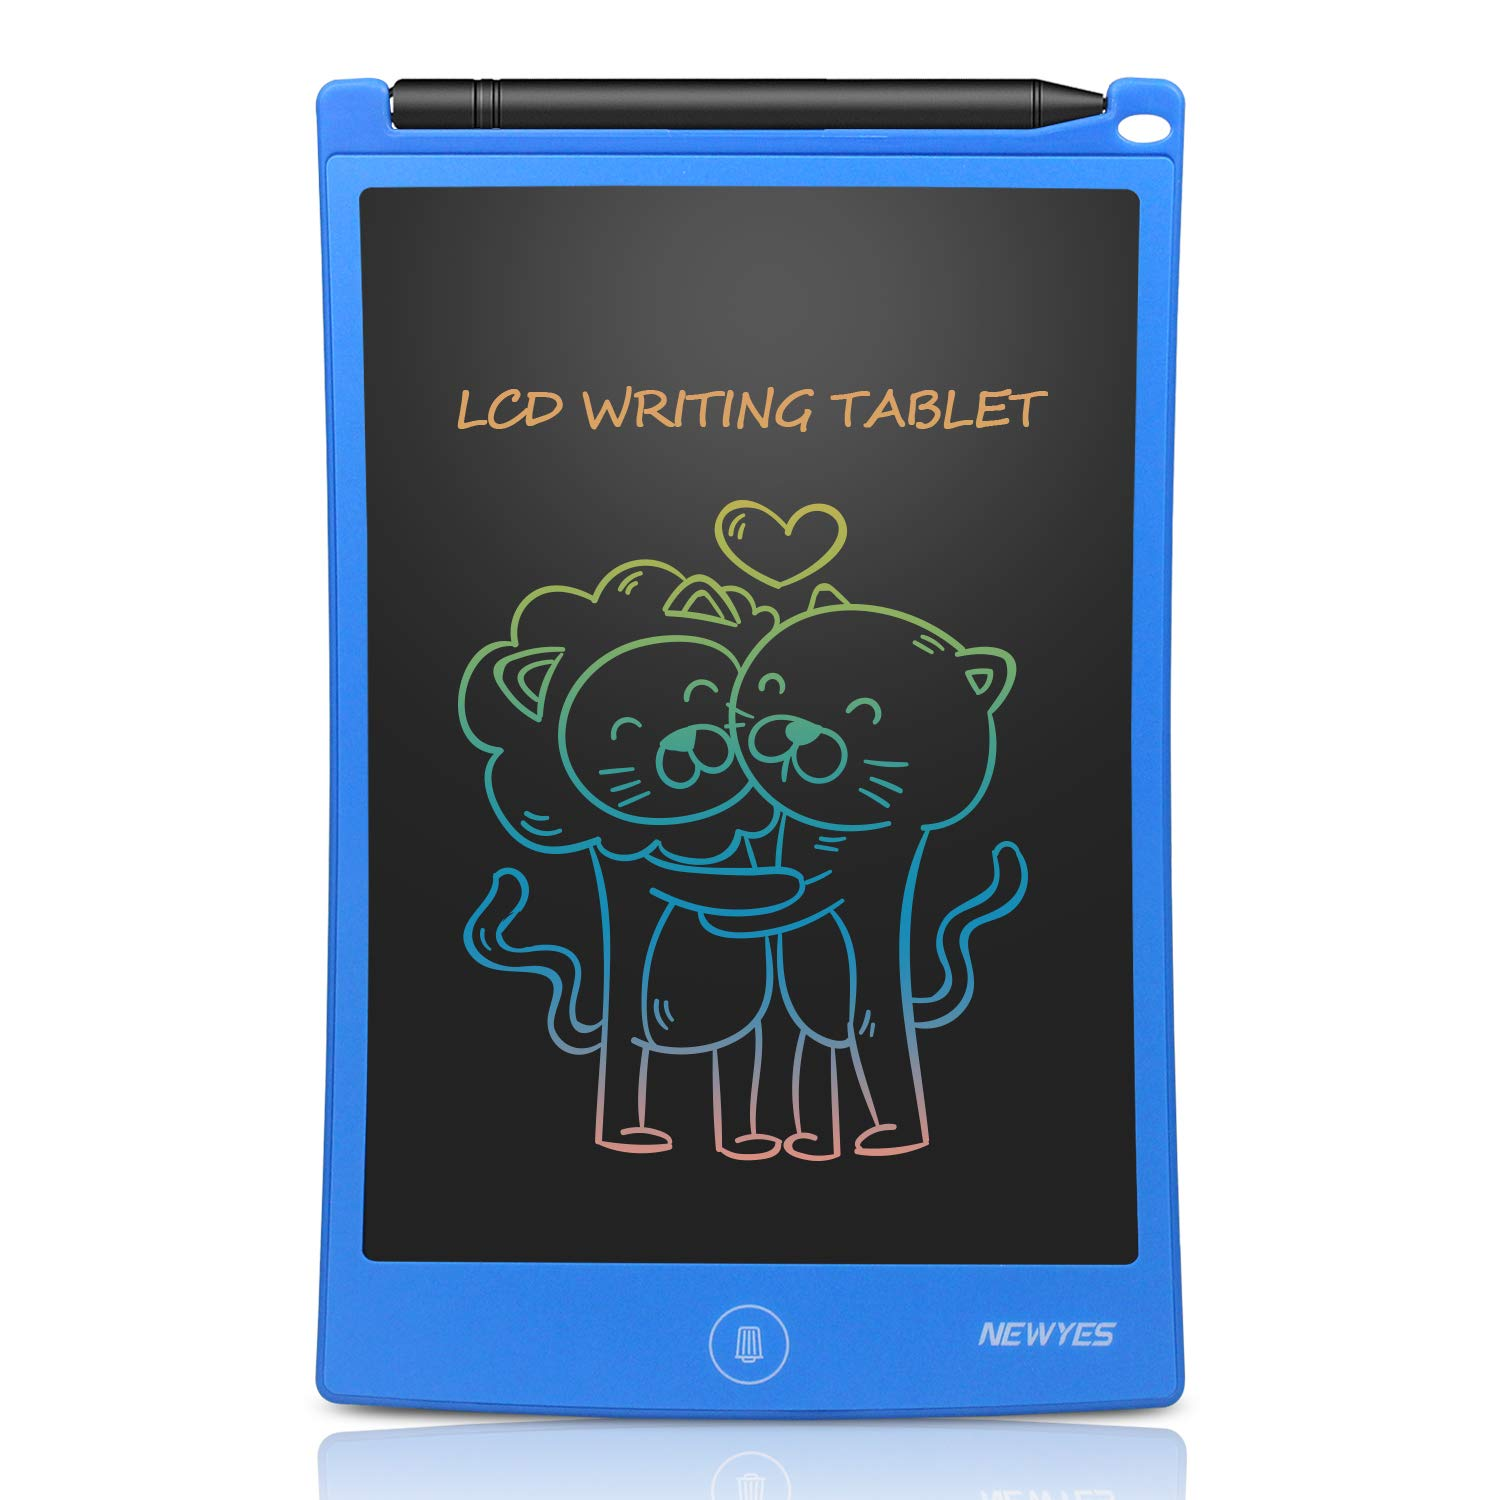 NEWYES 8.5 Inches Colorful Doodle Board LCD Screen Writing Tablet Magnetic Drawing Board Erasable Doodles Notepad Gifts for Ages 3+ Blue by NEWYES (Image #1)